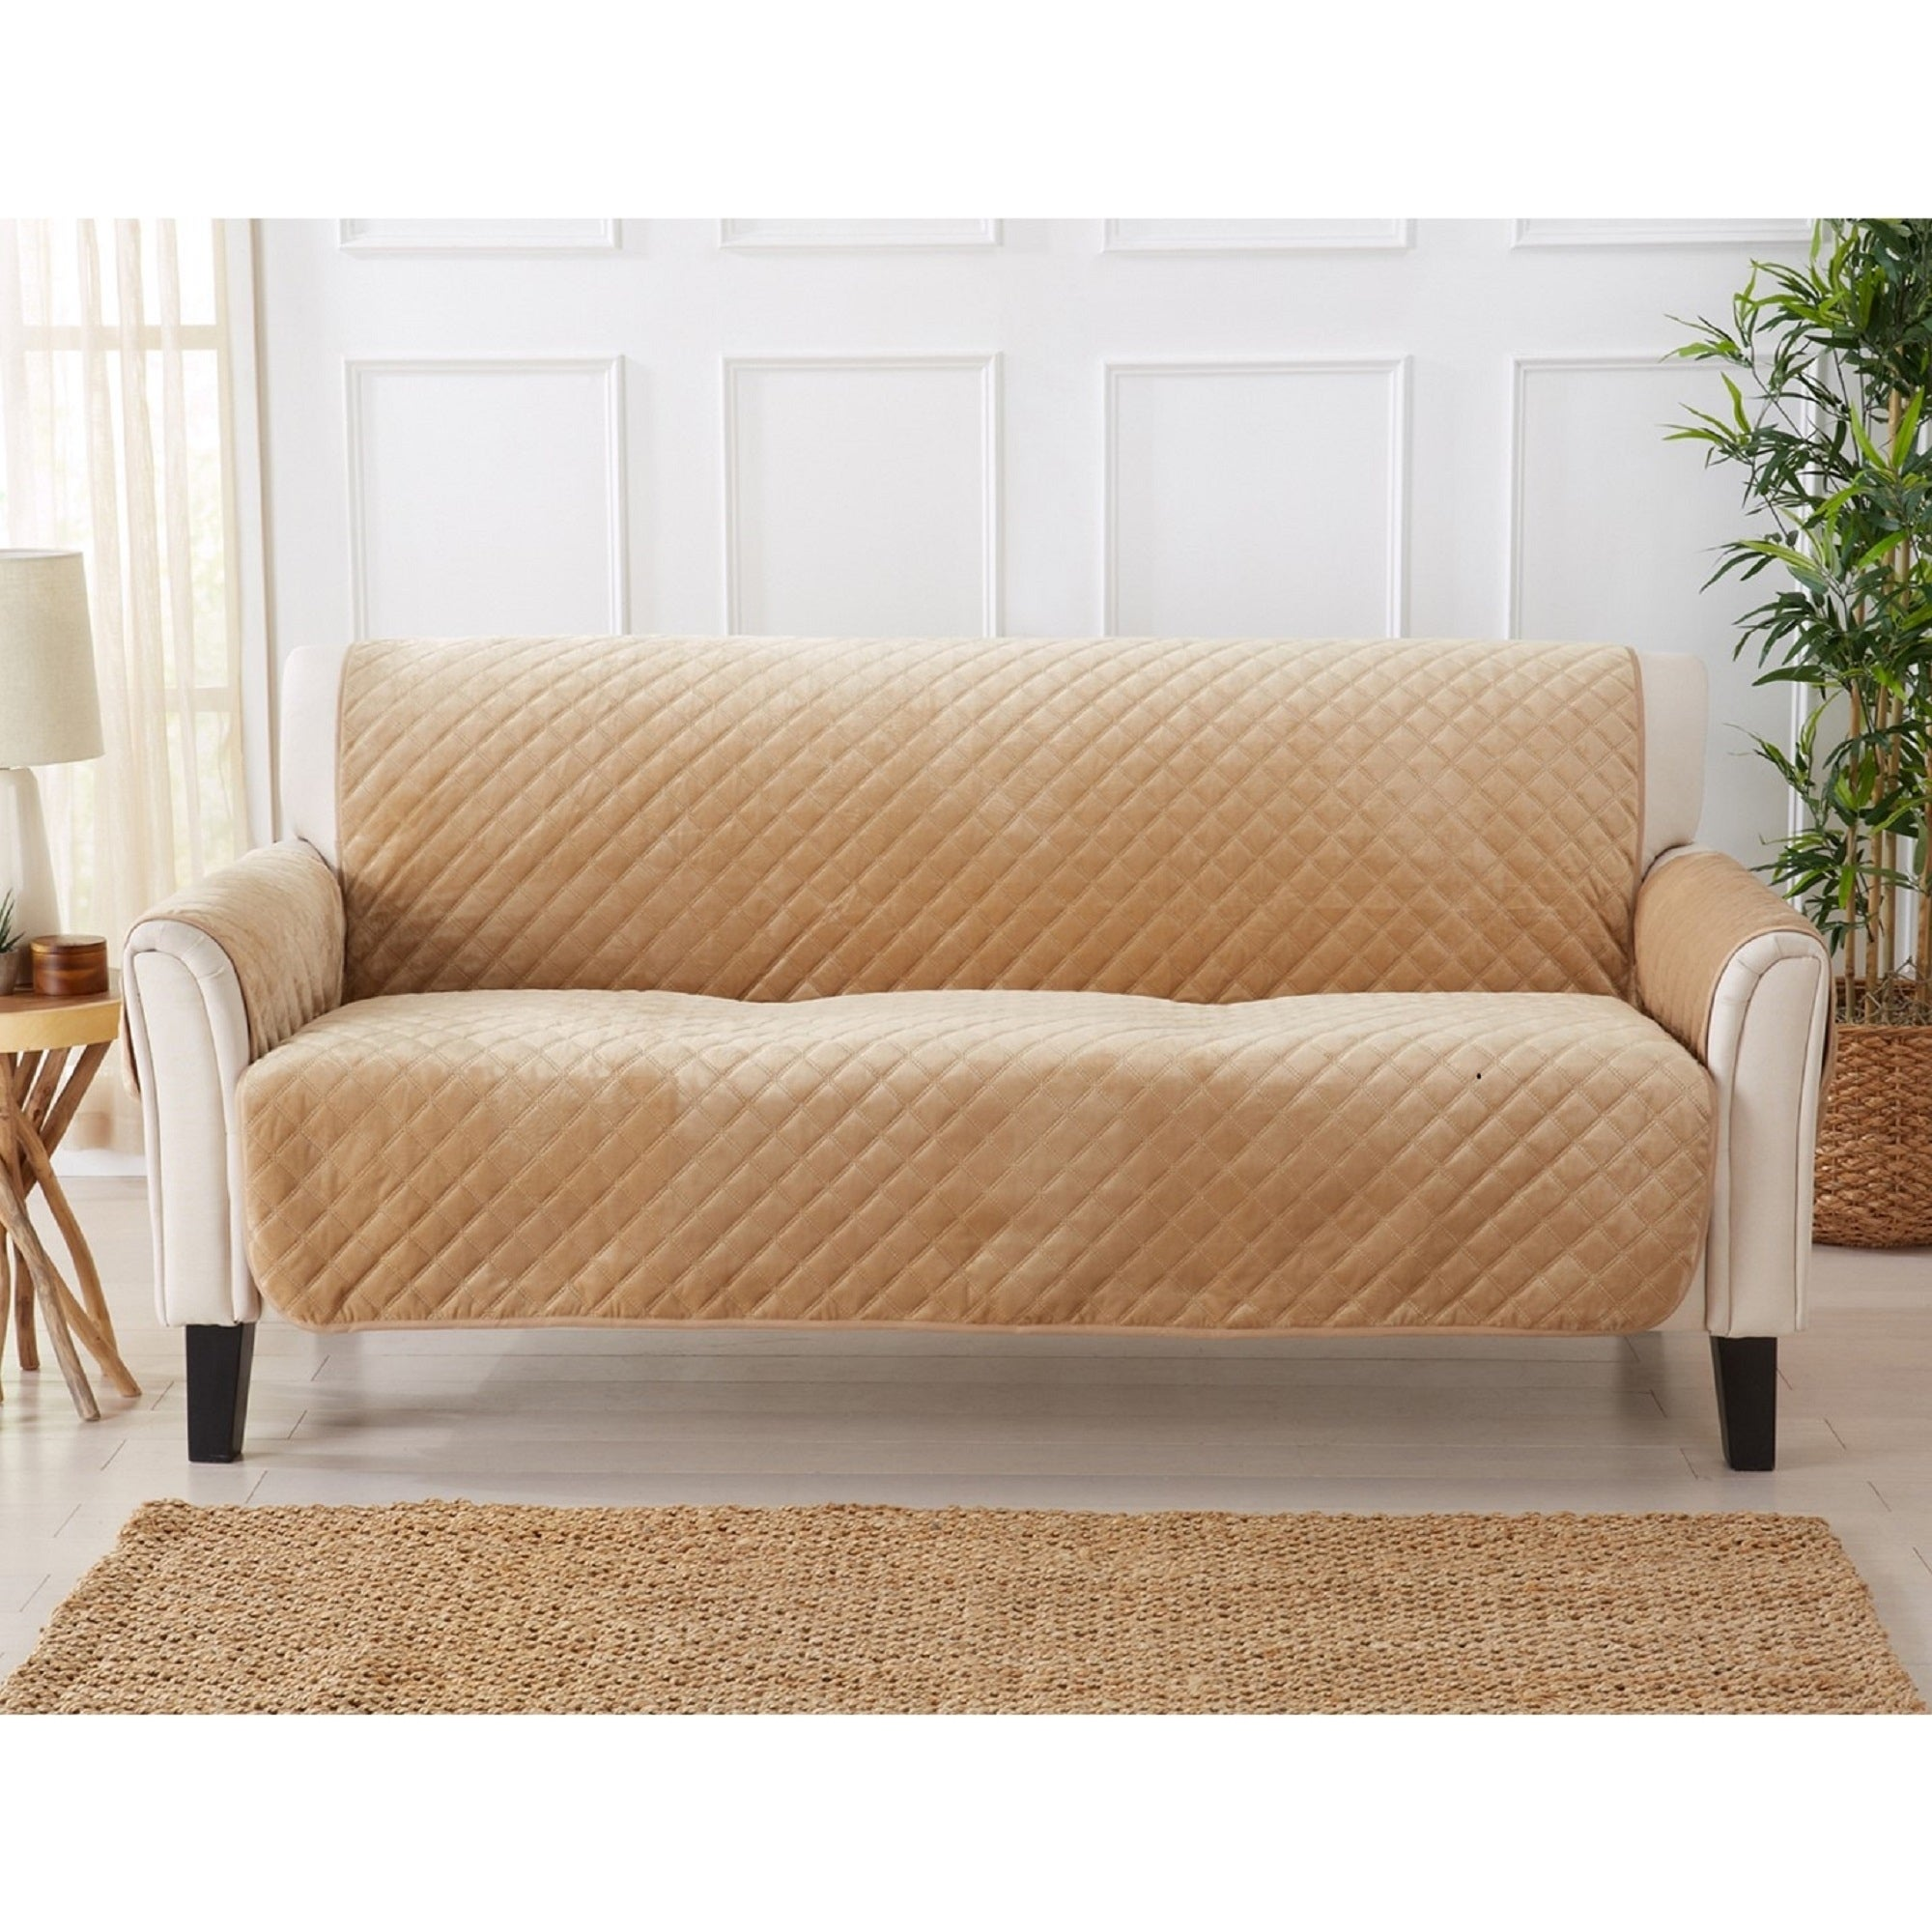 Sofa Saver Velvet Solid Furniture Protector On Free Shipping Today 23444192